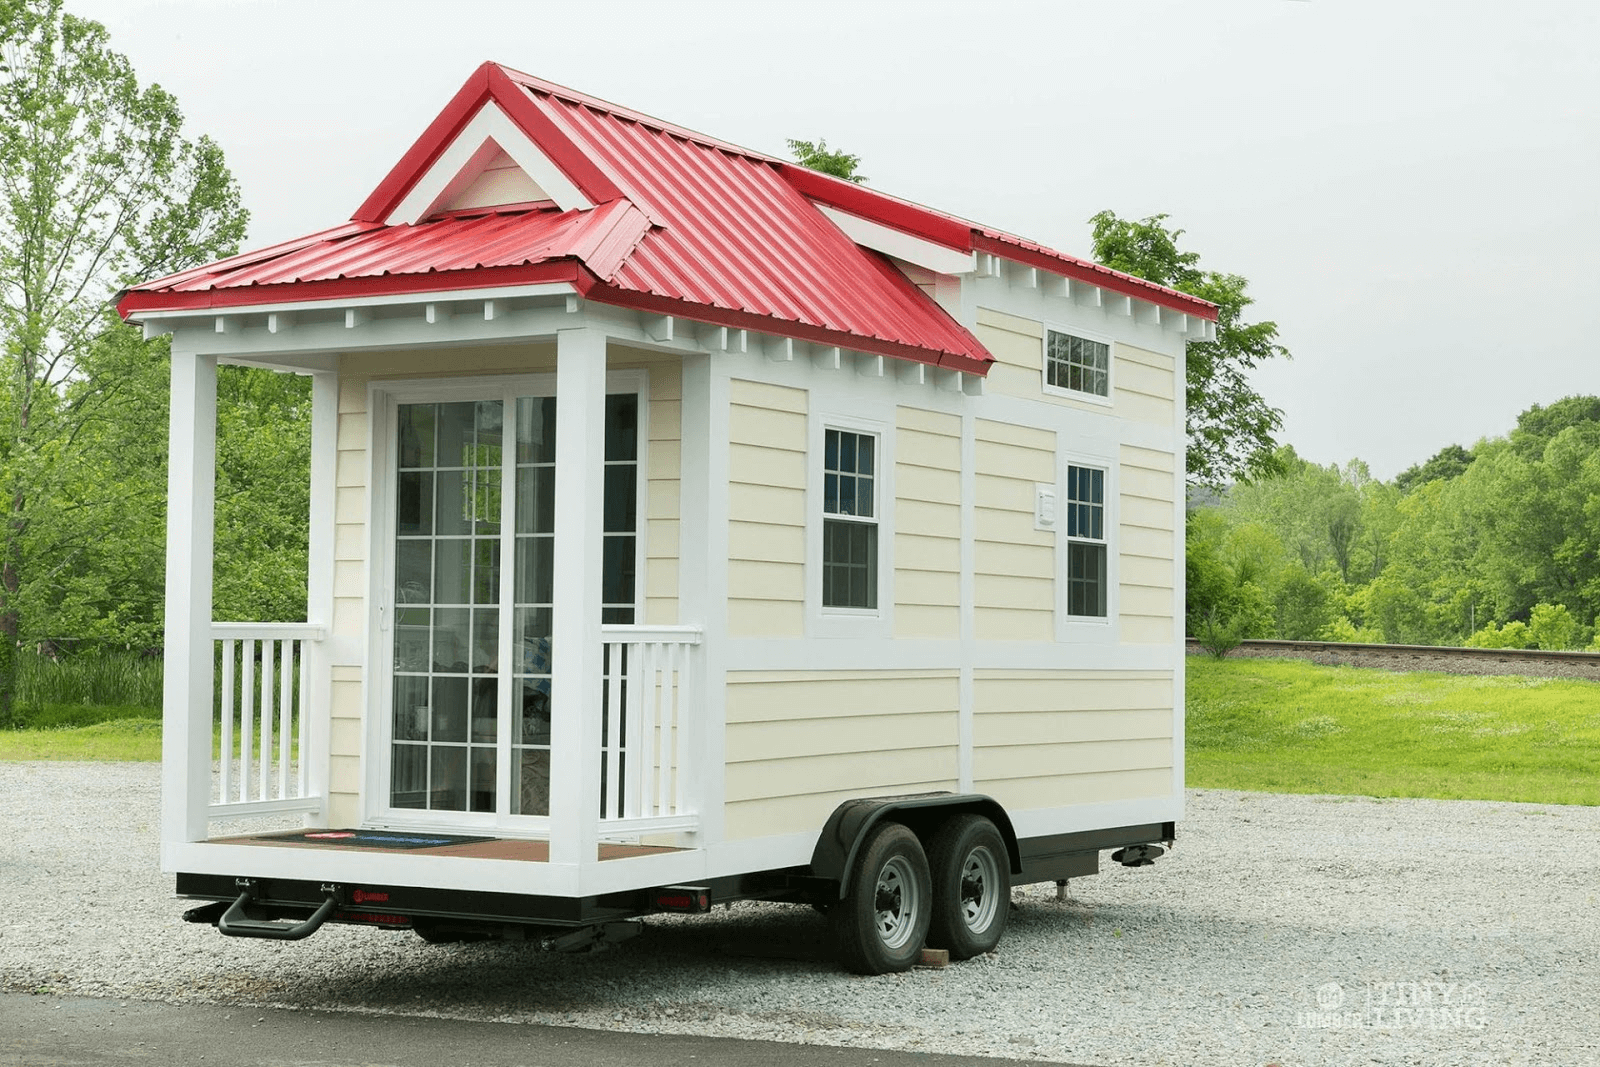 How much does a tiny house cost to build?